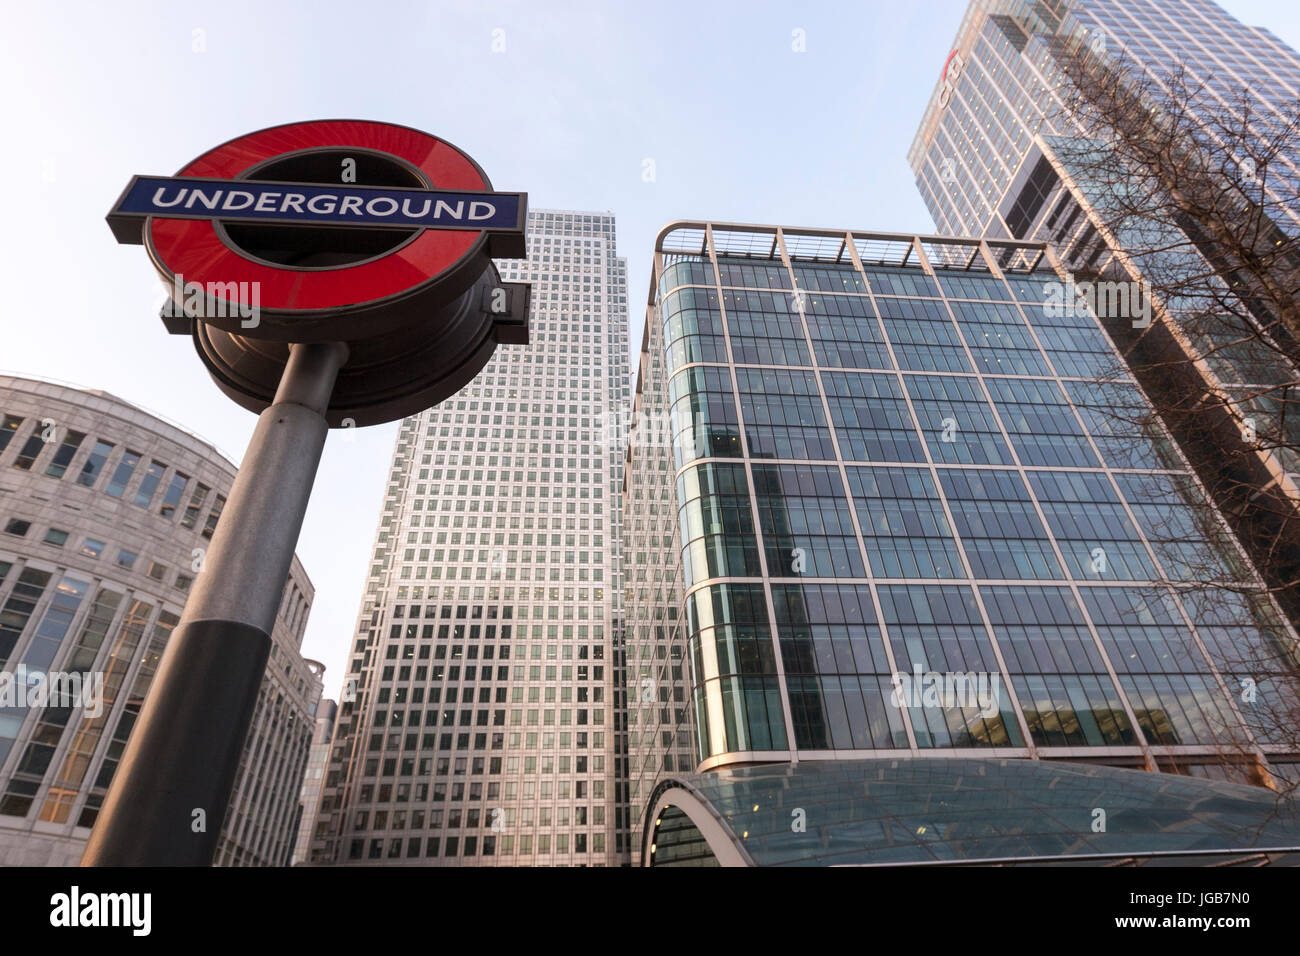 Canary Wharf Underground Station sign at reuters plaza and One Canada Square Tower, Canary Wharf, business district, Stock Photo